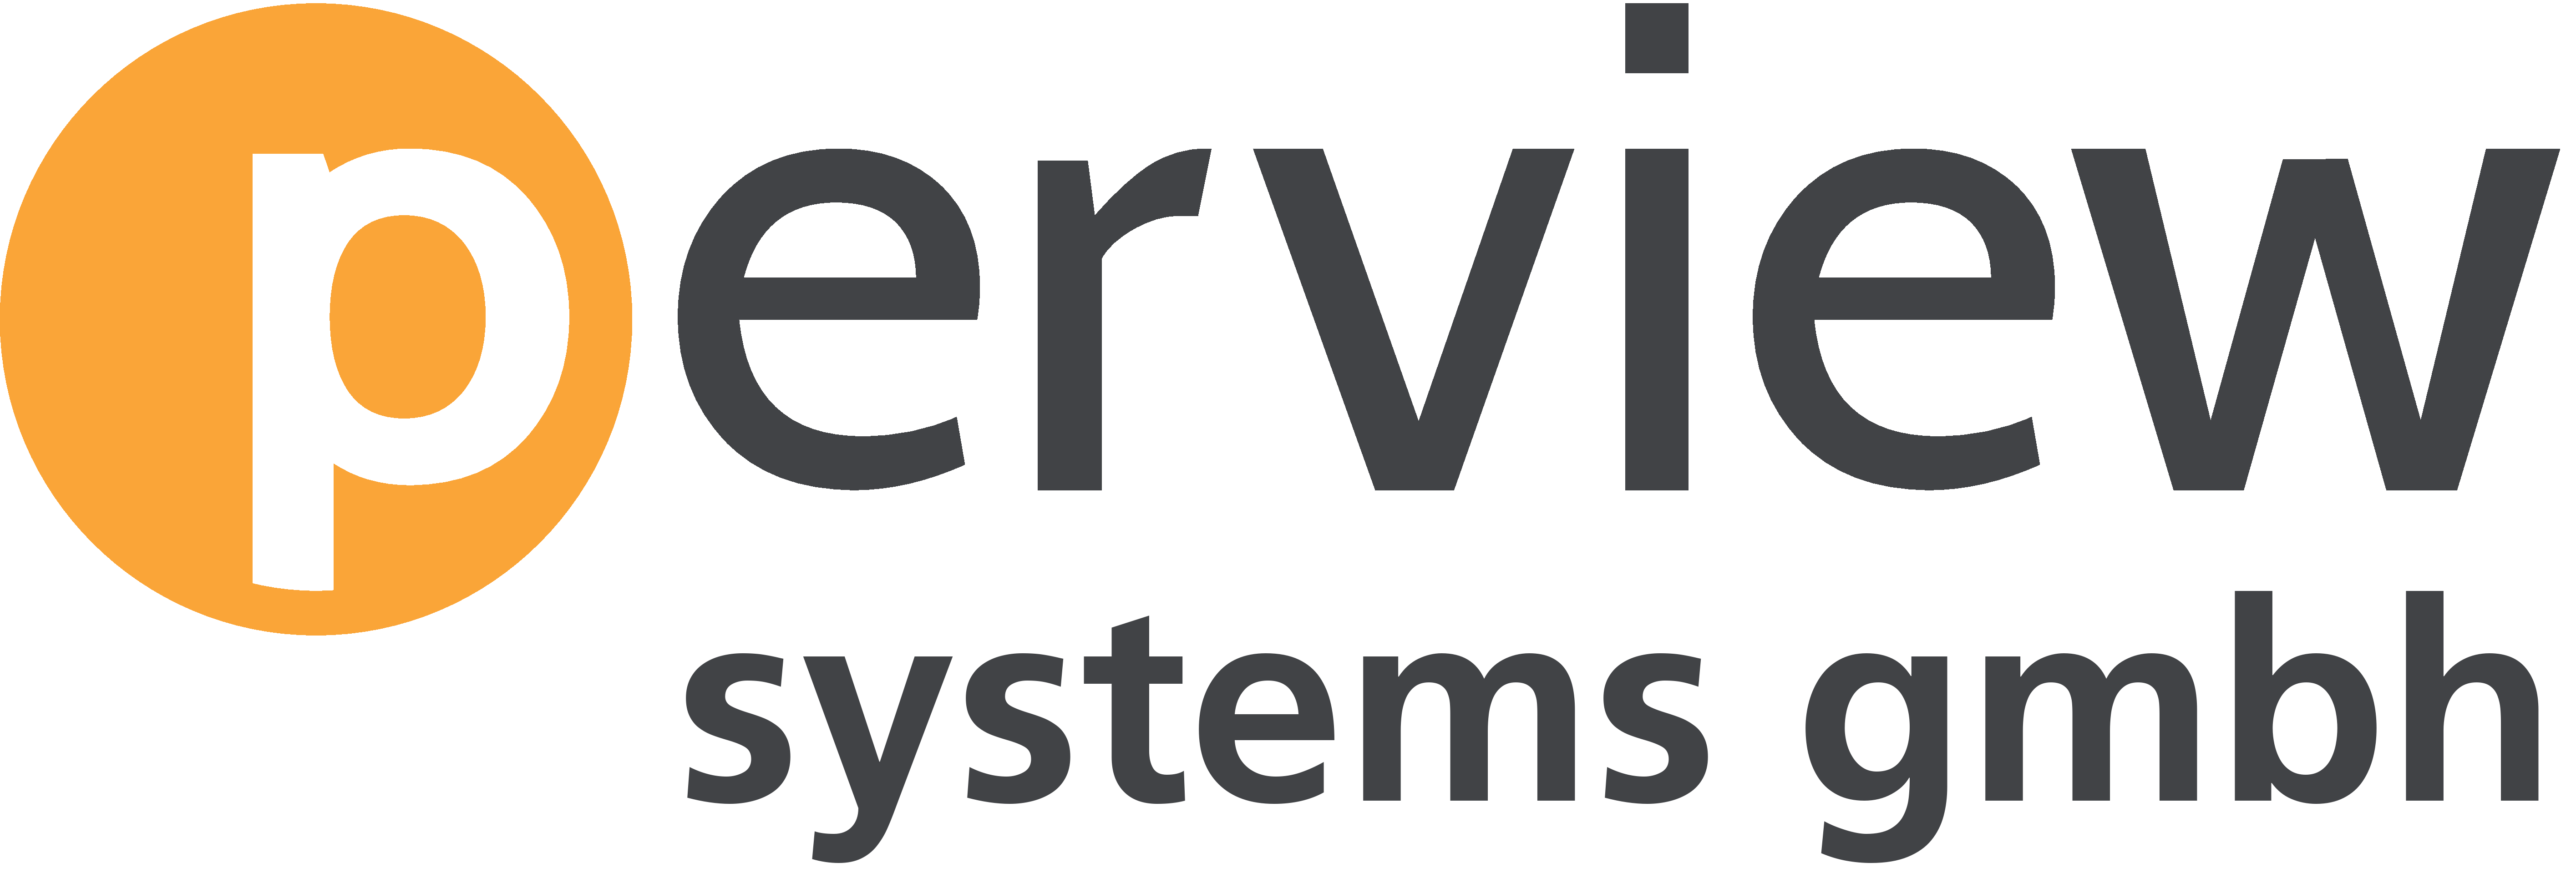 perview systems gmbh